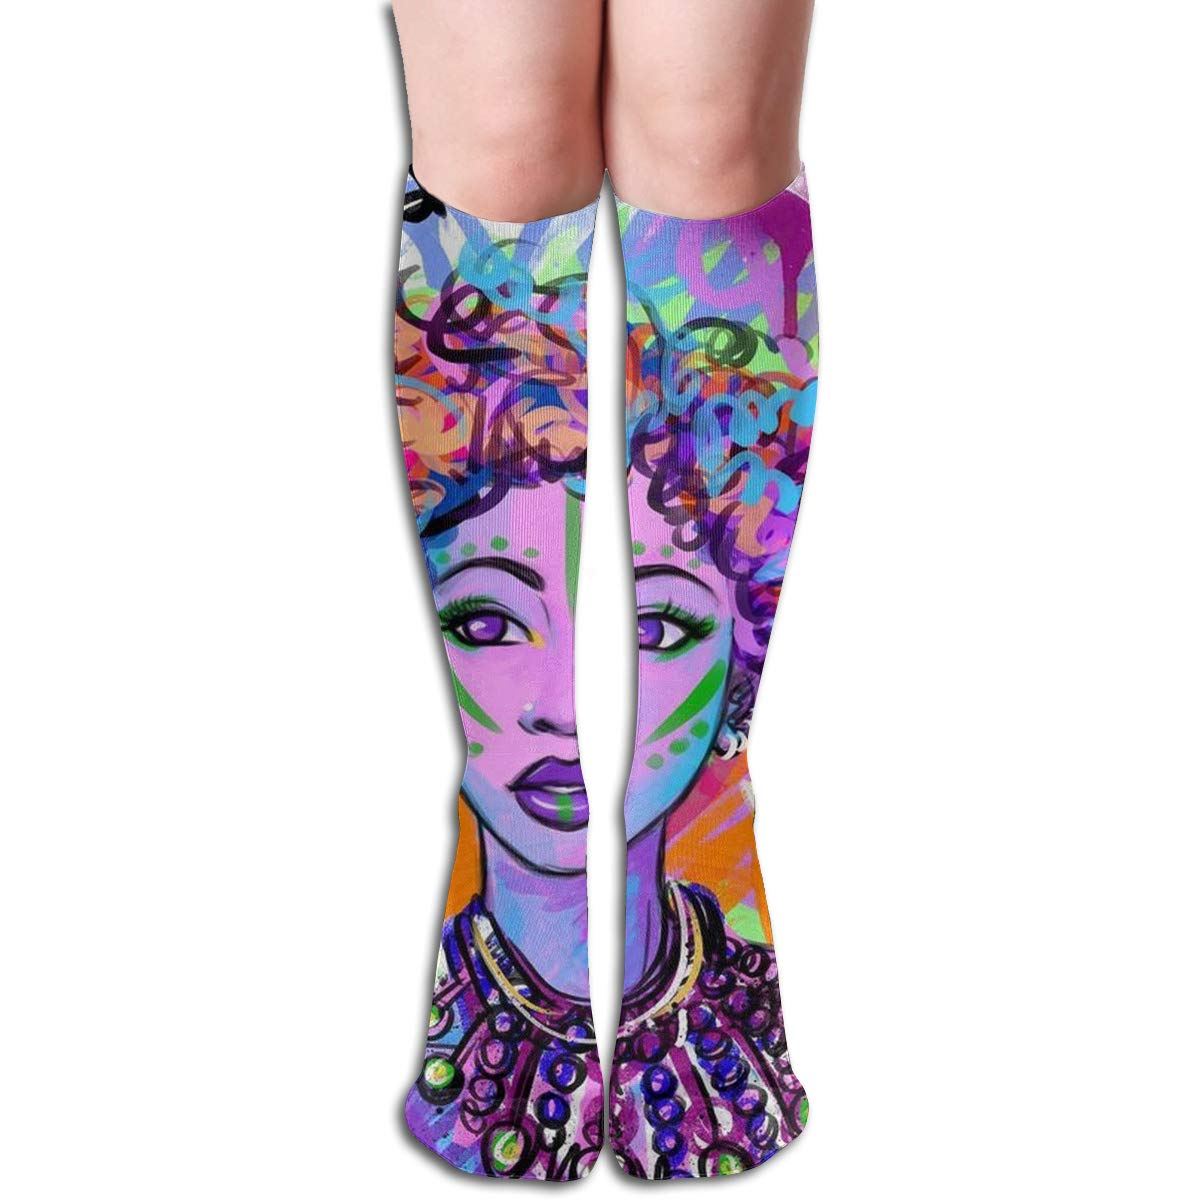 Carolina Panther Drawing Compression Socks For Women Casual Fashion Crew Socks